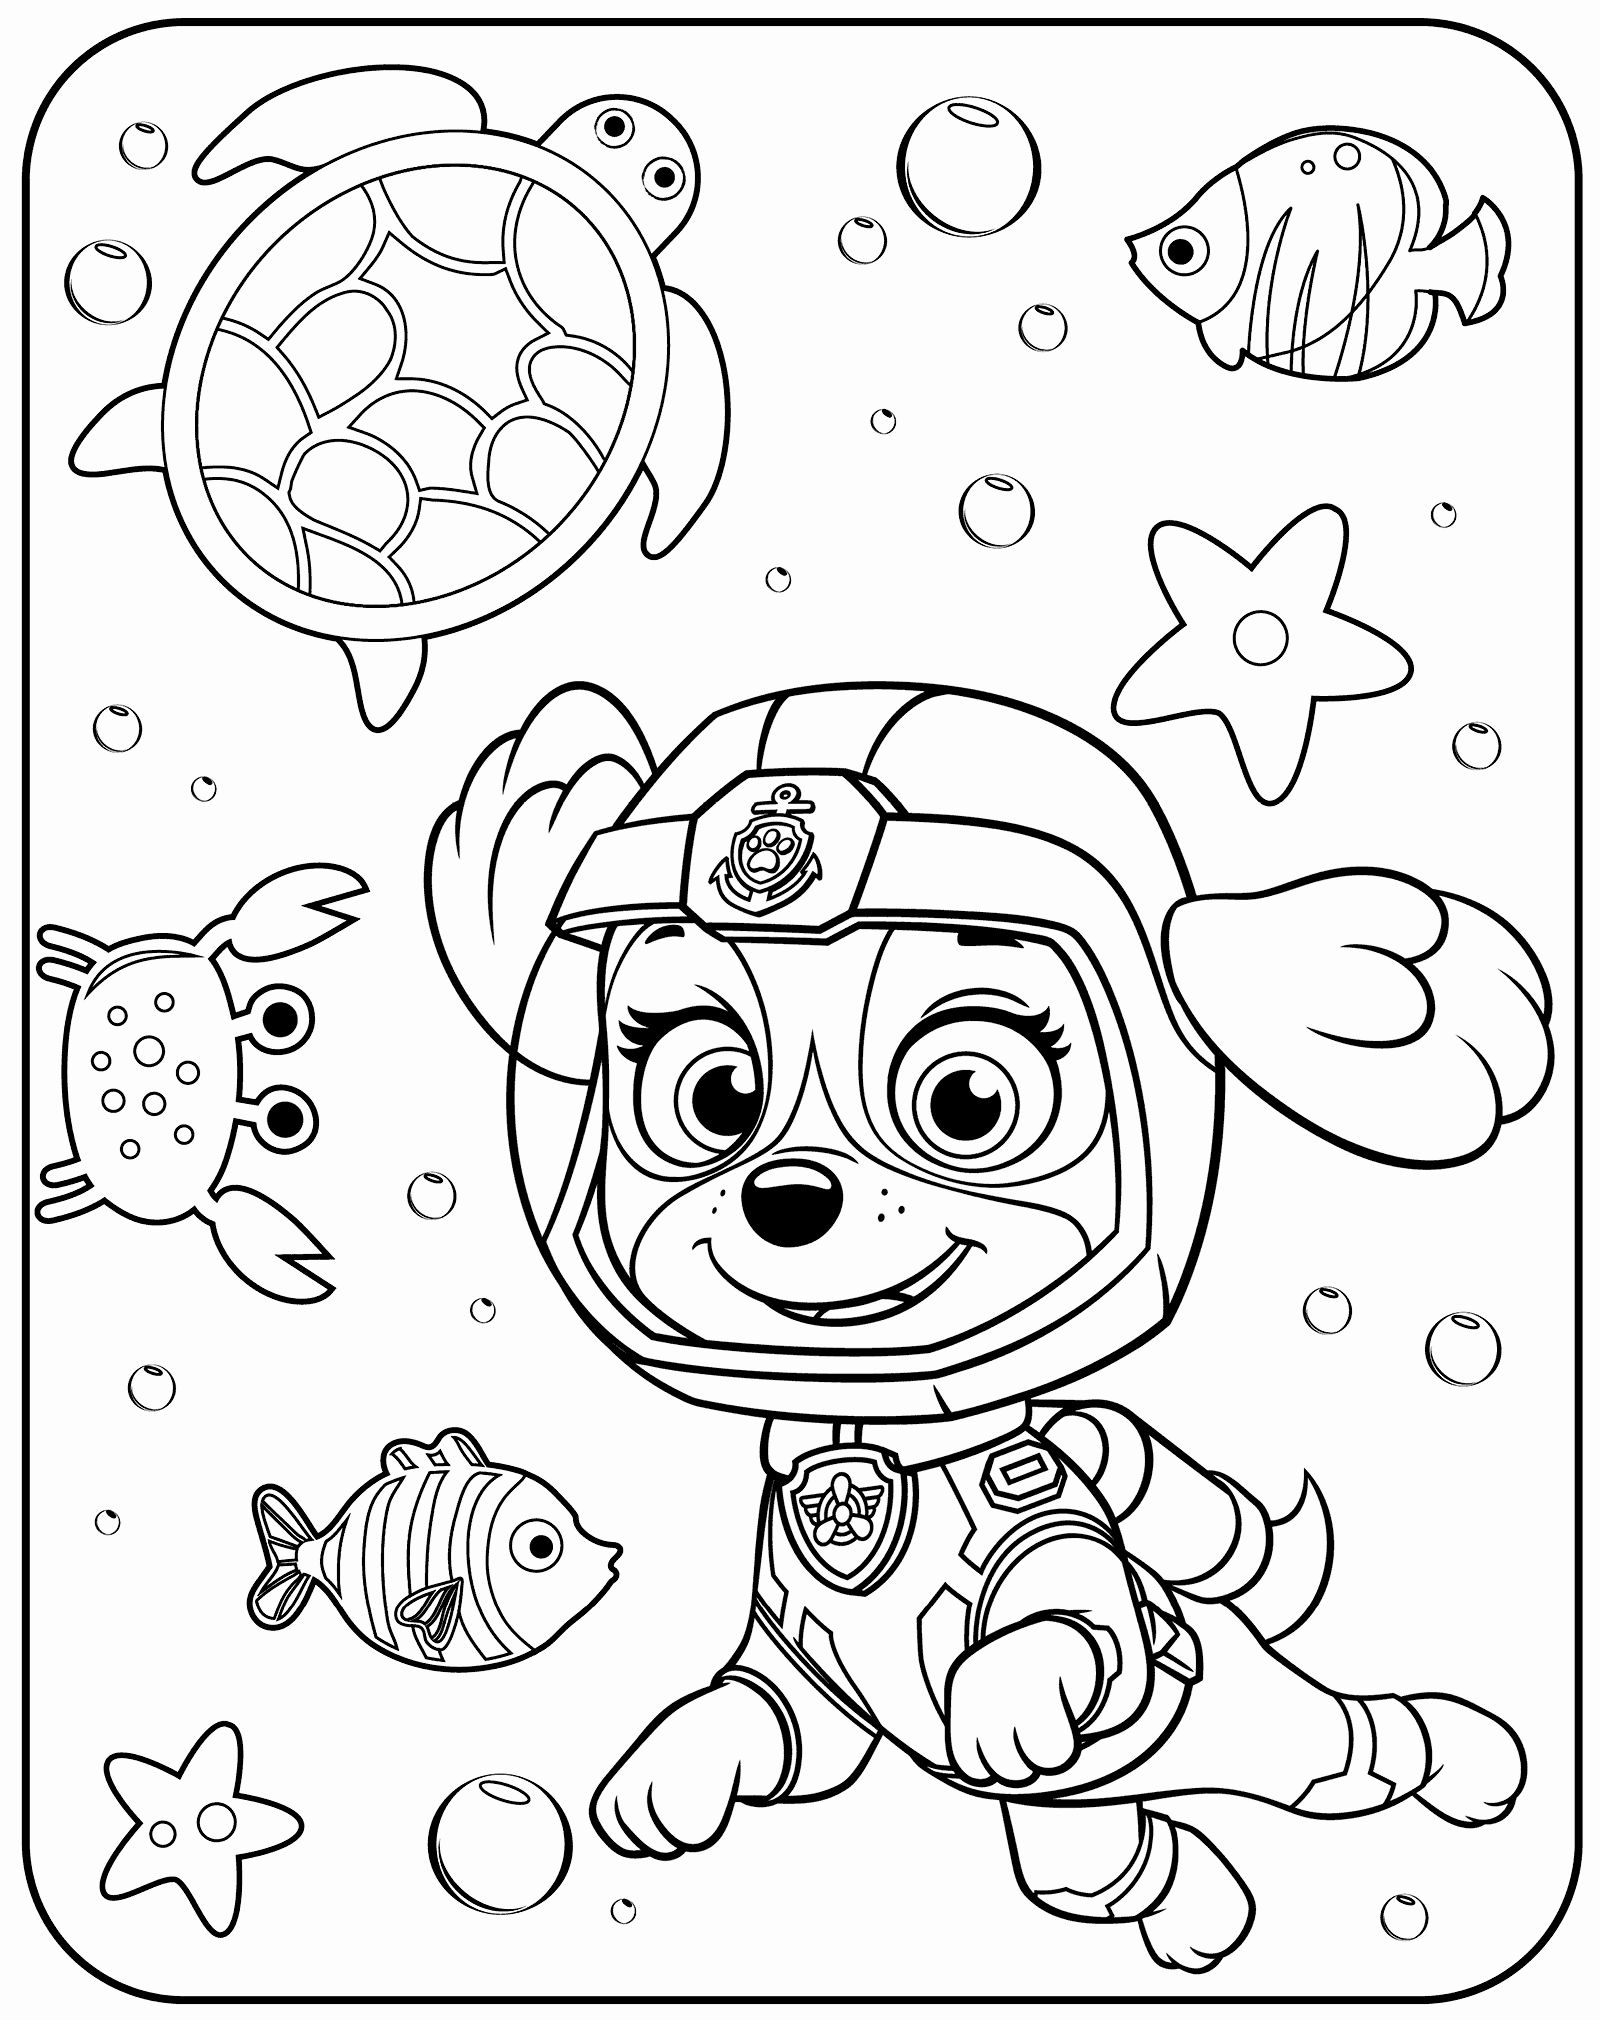 27 Paw Patrol Coloring Book In 2020 Paw Patrol Coloring Pages